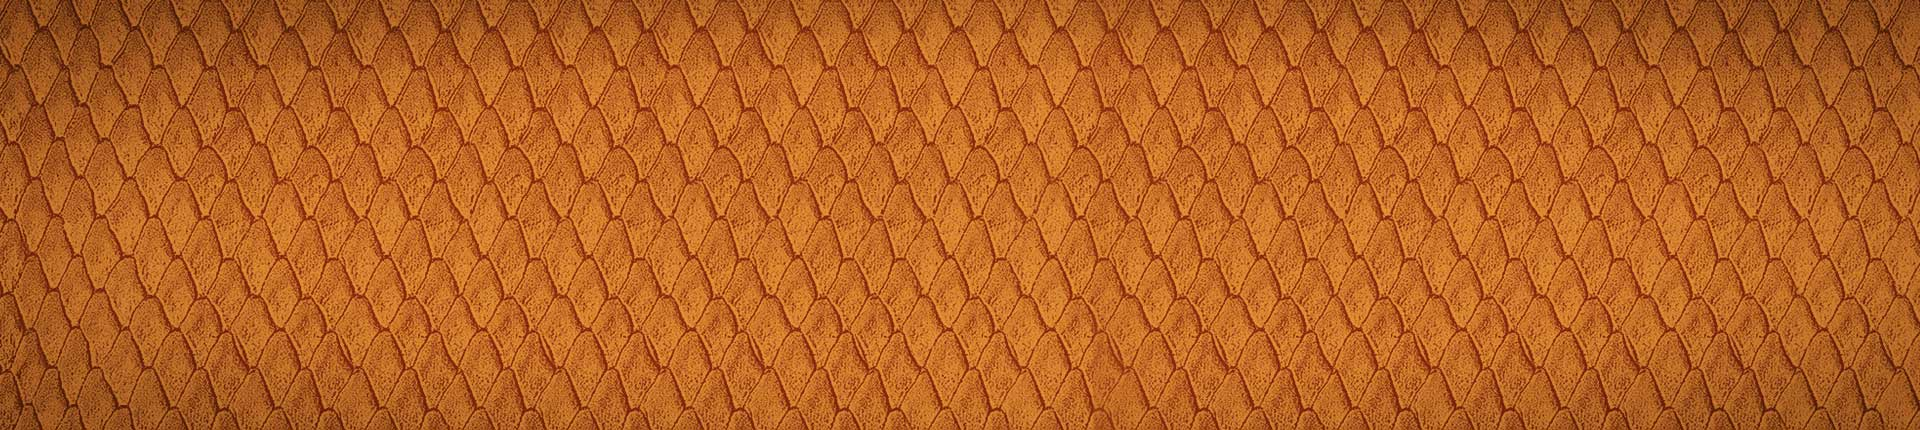 Closeup image of gold colored Wilson baseball glove material